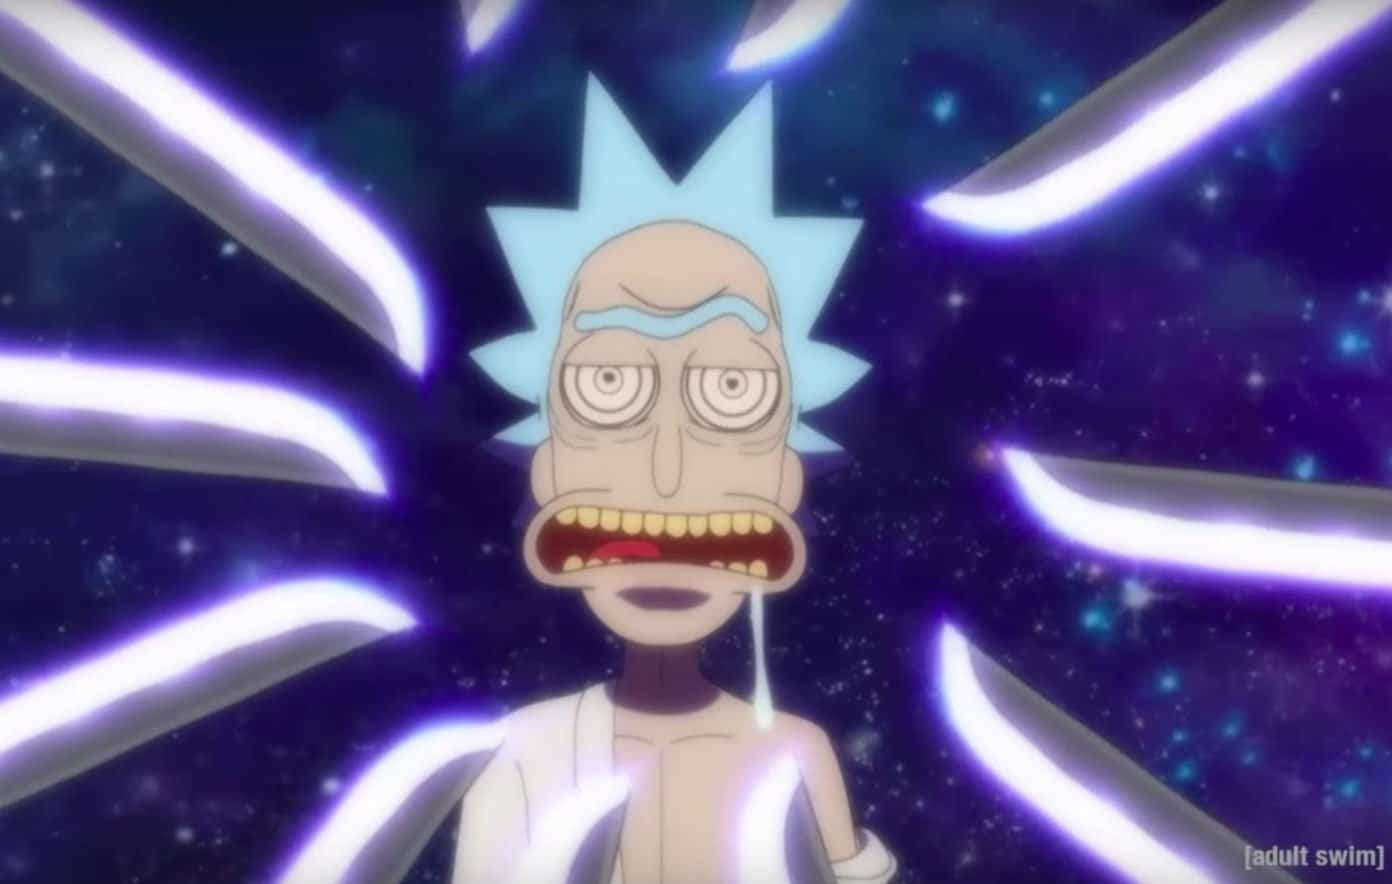 rick-and-morty-court metrage